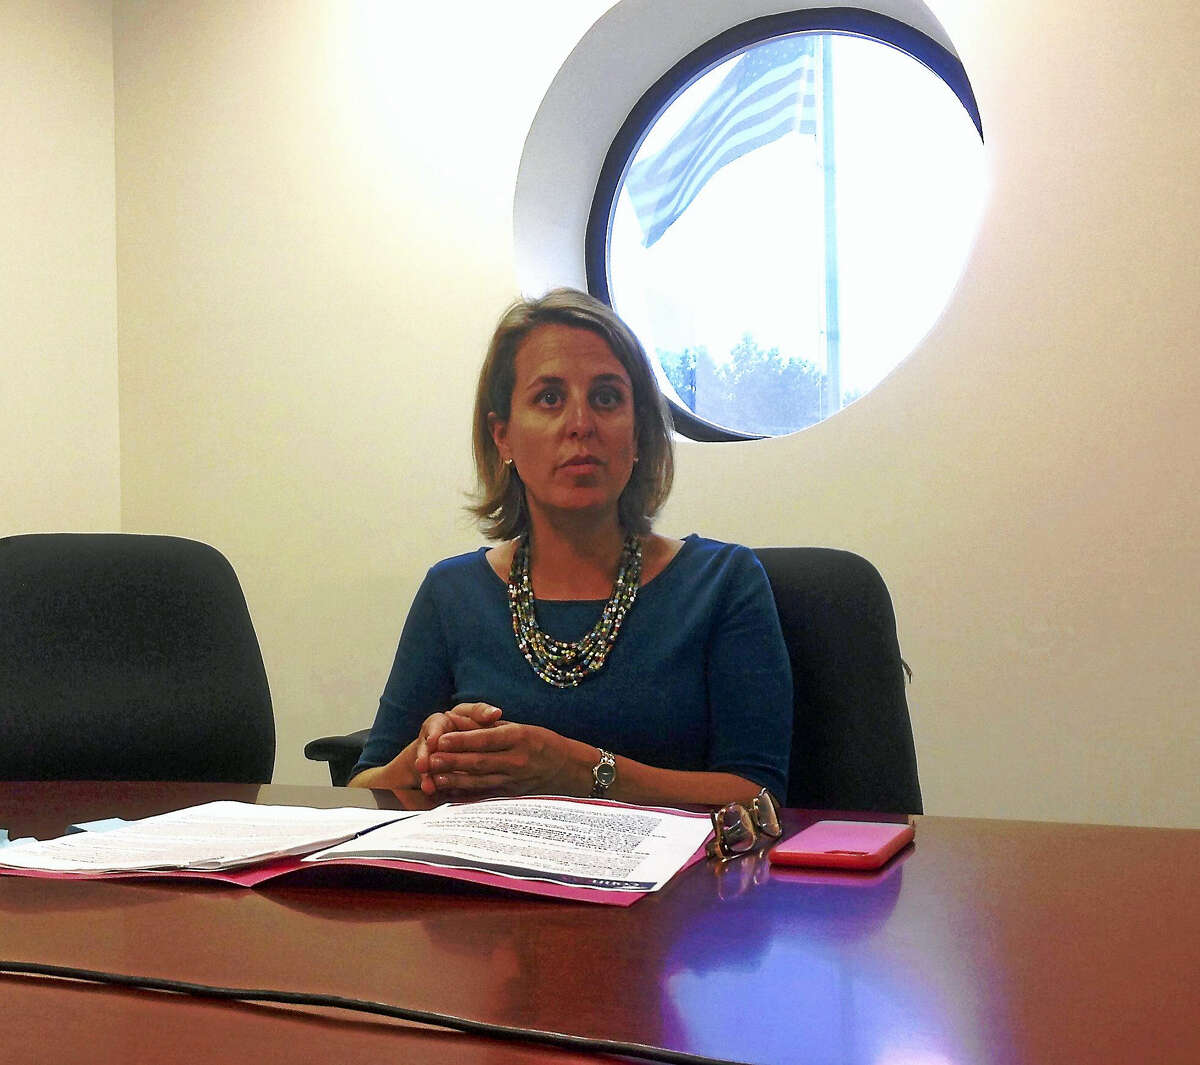 Jennifer Alexander, CEO of the educational advocacy group Connecticut Coalition for Achievement Now, meets with the New Haven Register Editorial Board